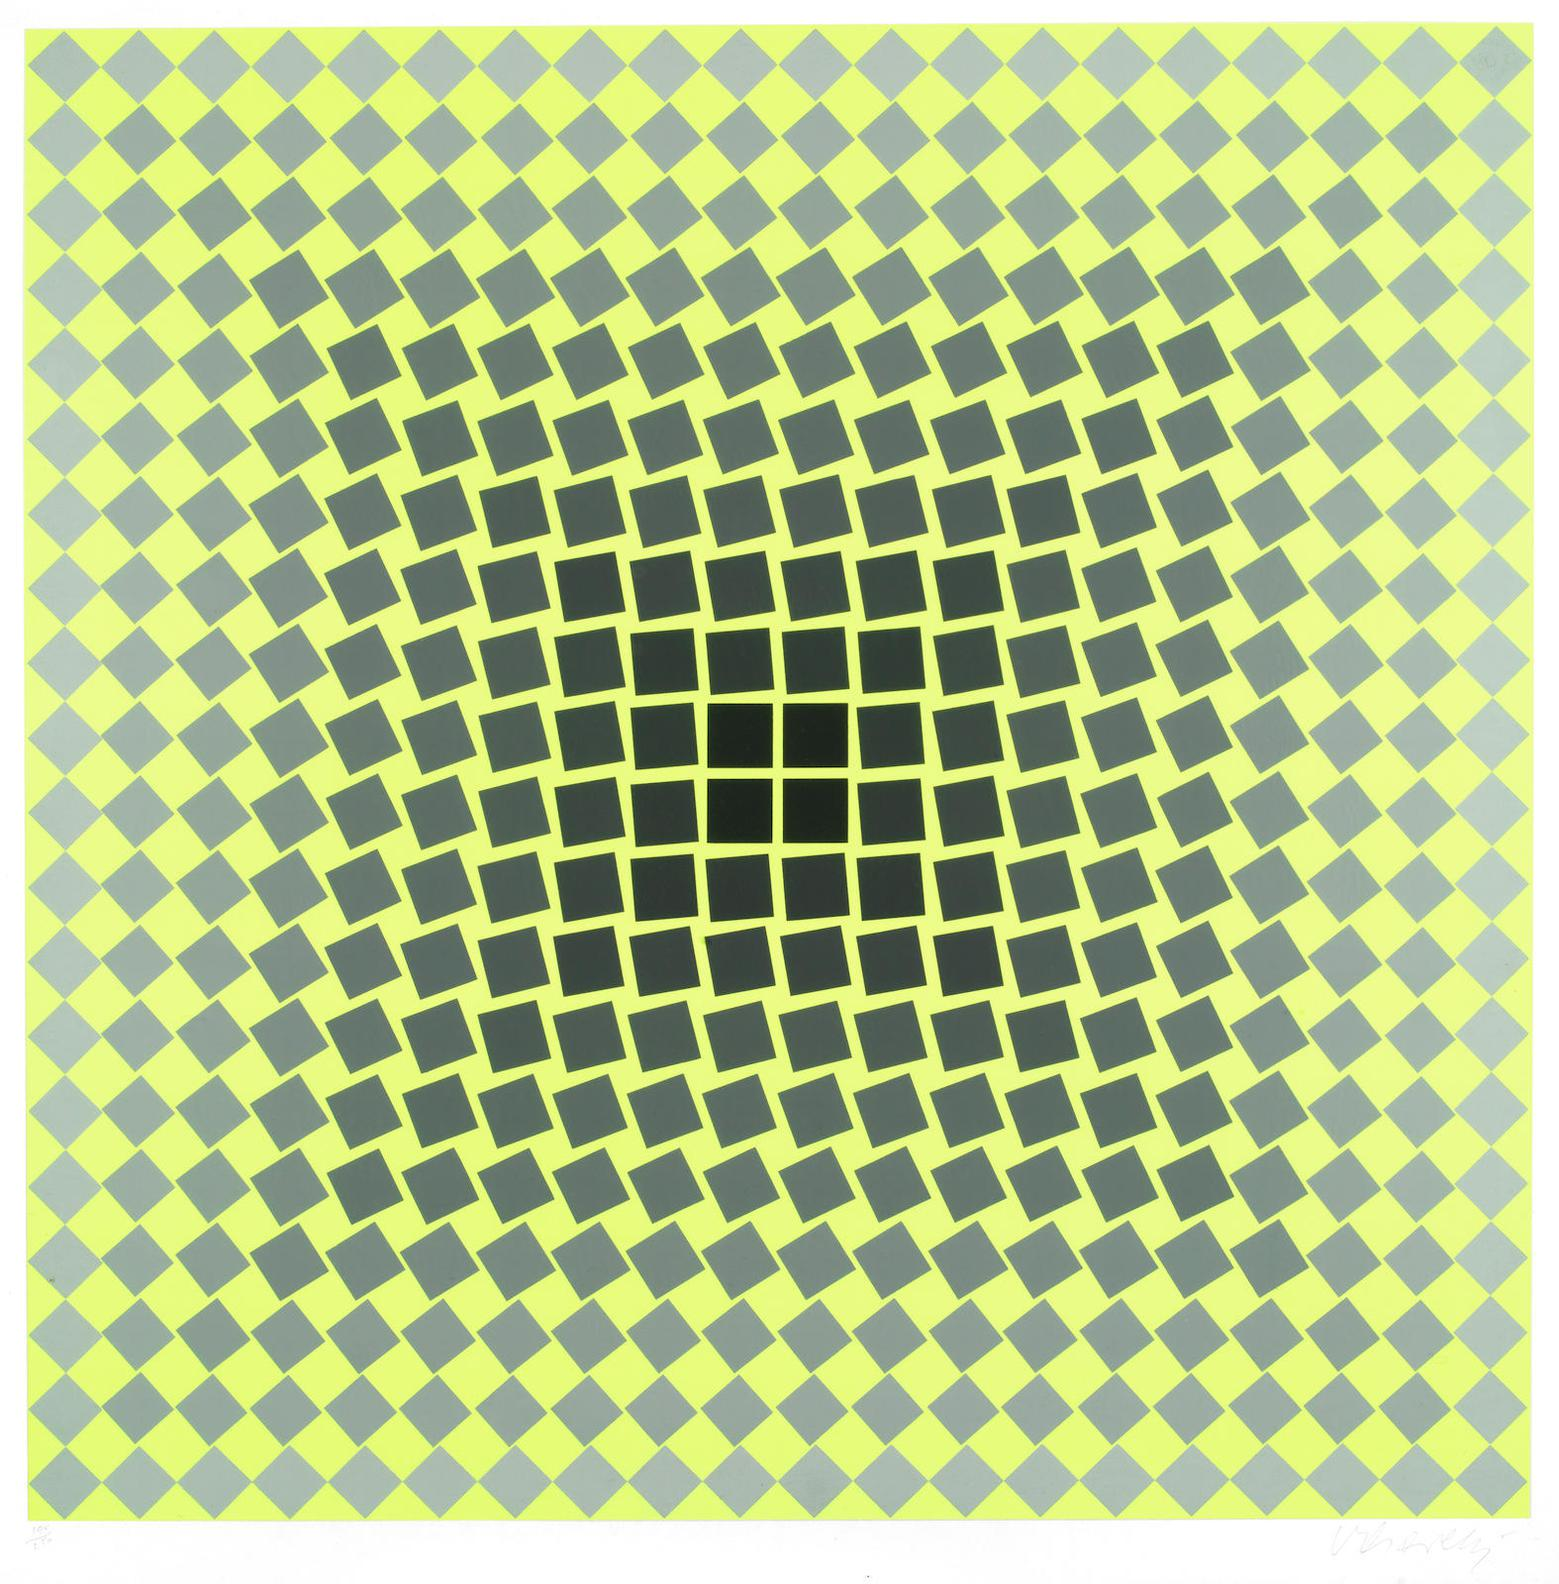 Victor Vasarely-Untitled (Yellow, Silver And Black)-